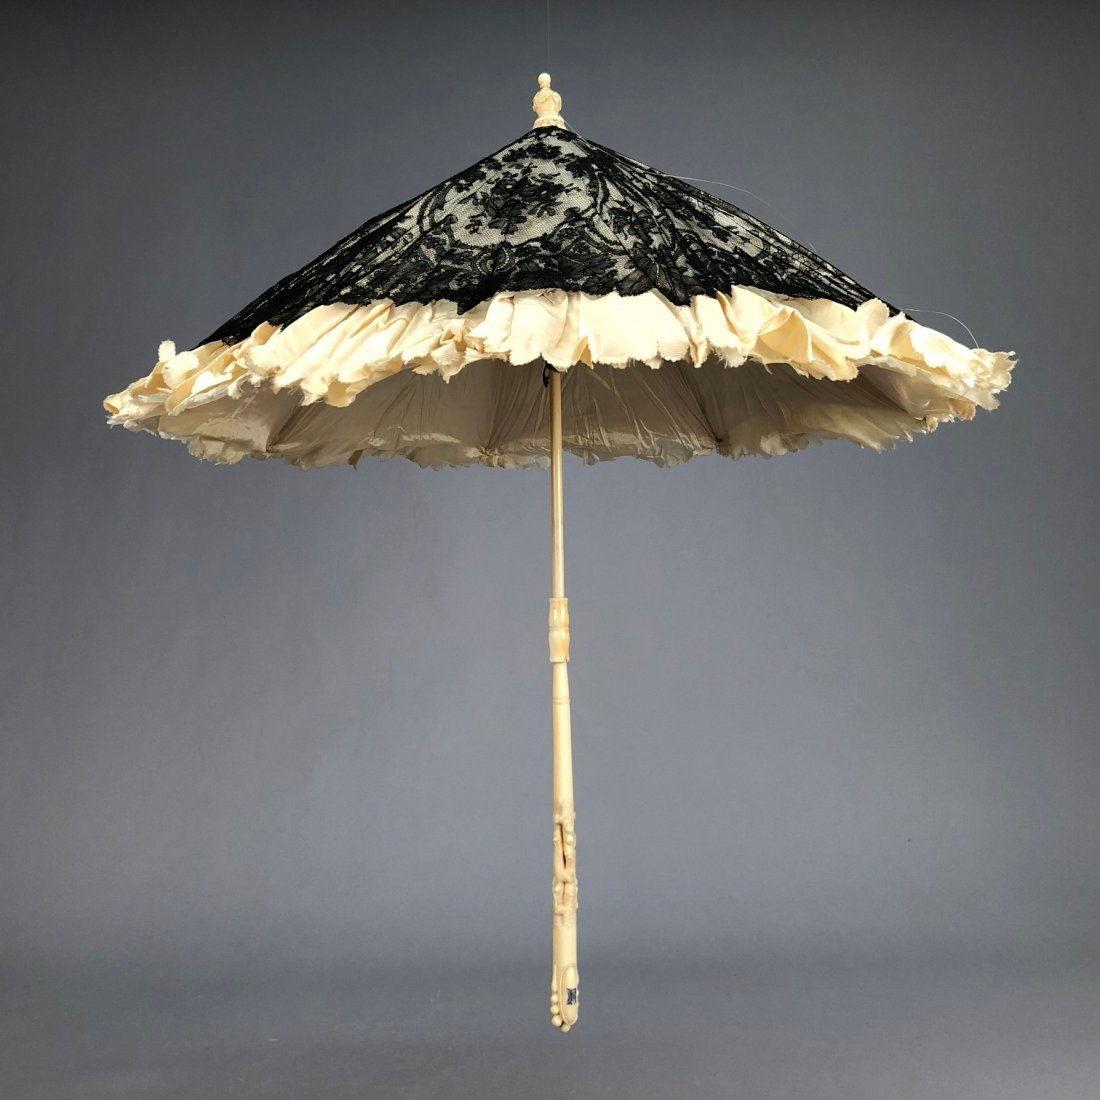 CHANTILLY LACE PARASOL with CARVED IVORY HANDLE